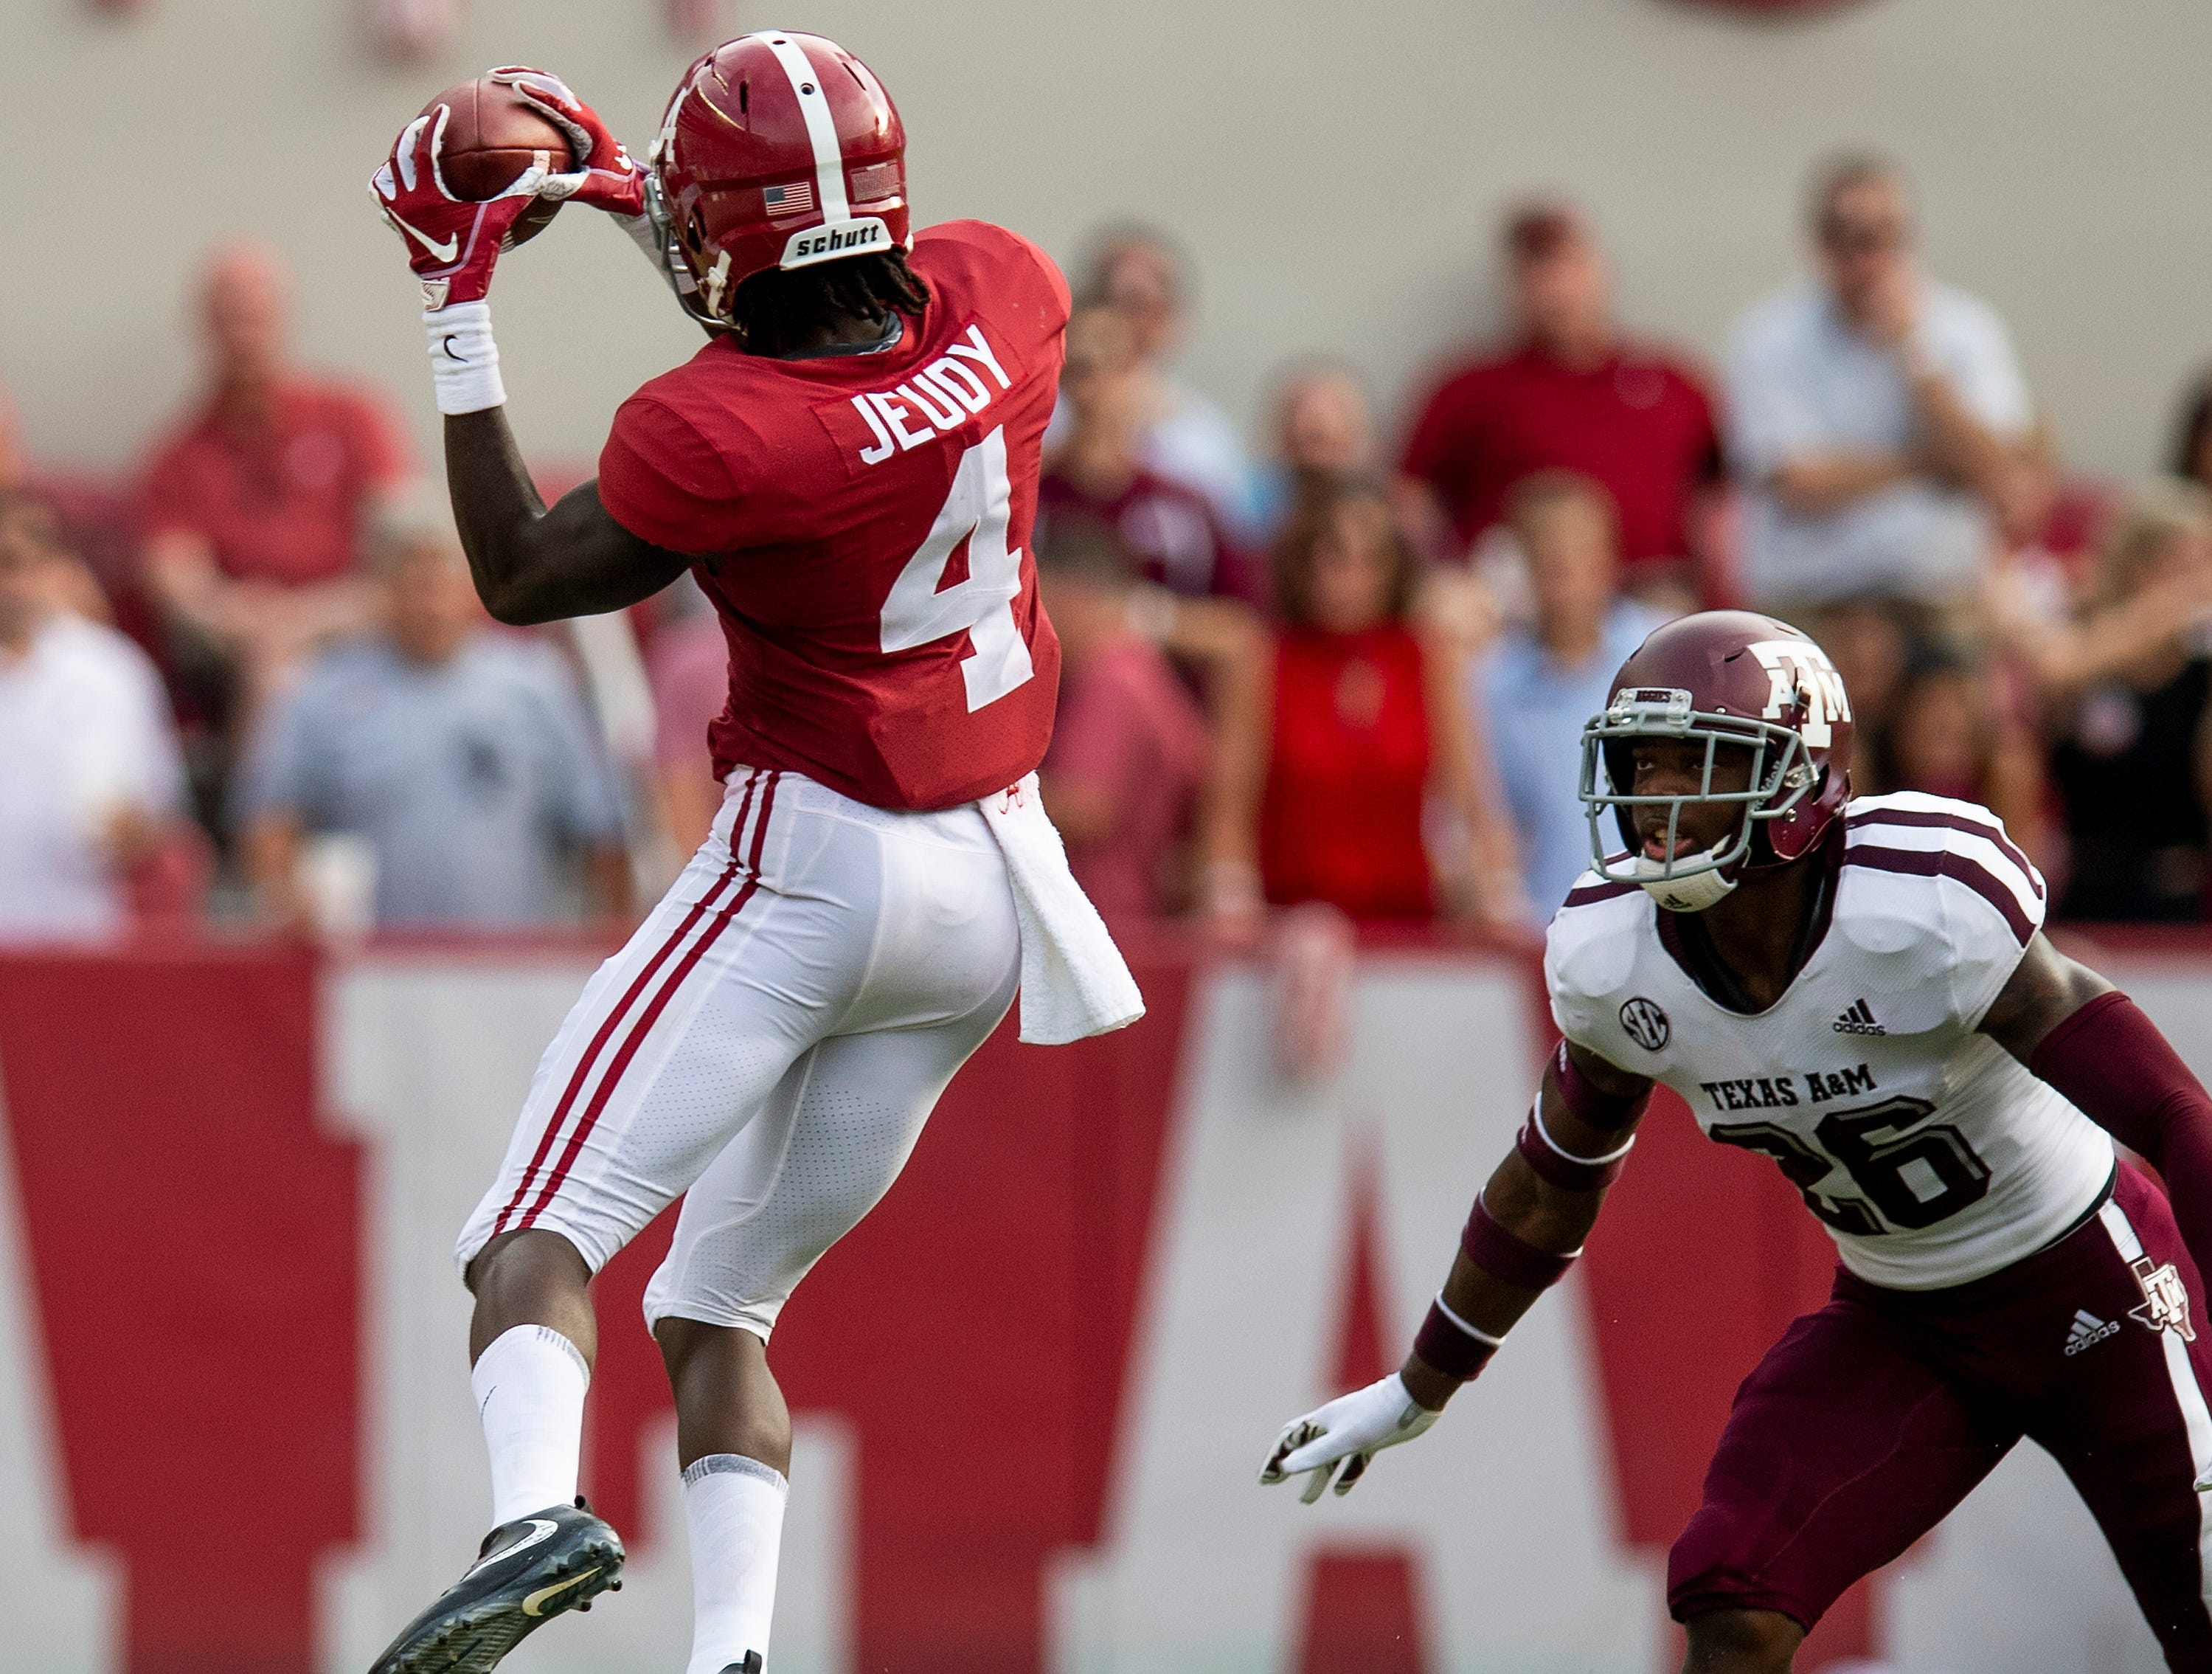 Alabama wide receiver Jerry Jeudy (4) catches a pass against Texas A&M defensive back Deshawn Capers-Smith (26) in second half action in Tuscaloosa, Ala., on Saturday September 22, 2018.